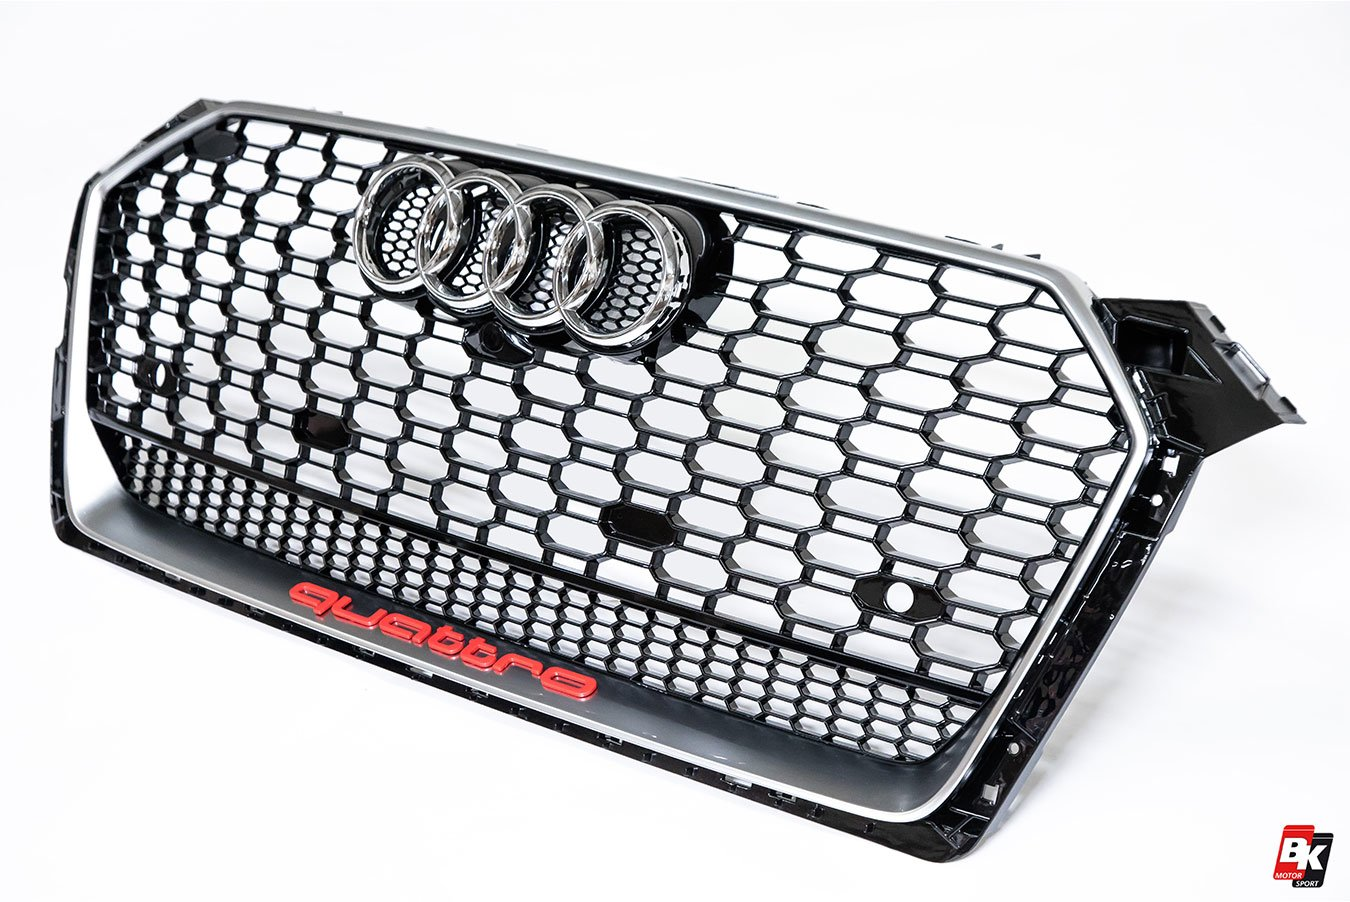 BKM Front Grille with Silver Frame (RS5 Style), fits Audi A5/S5 B9